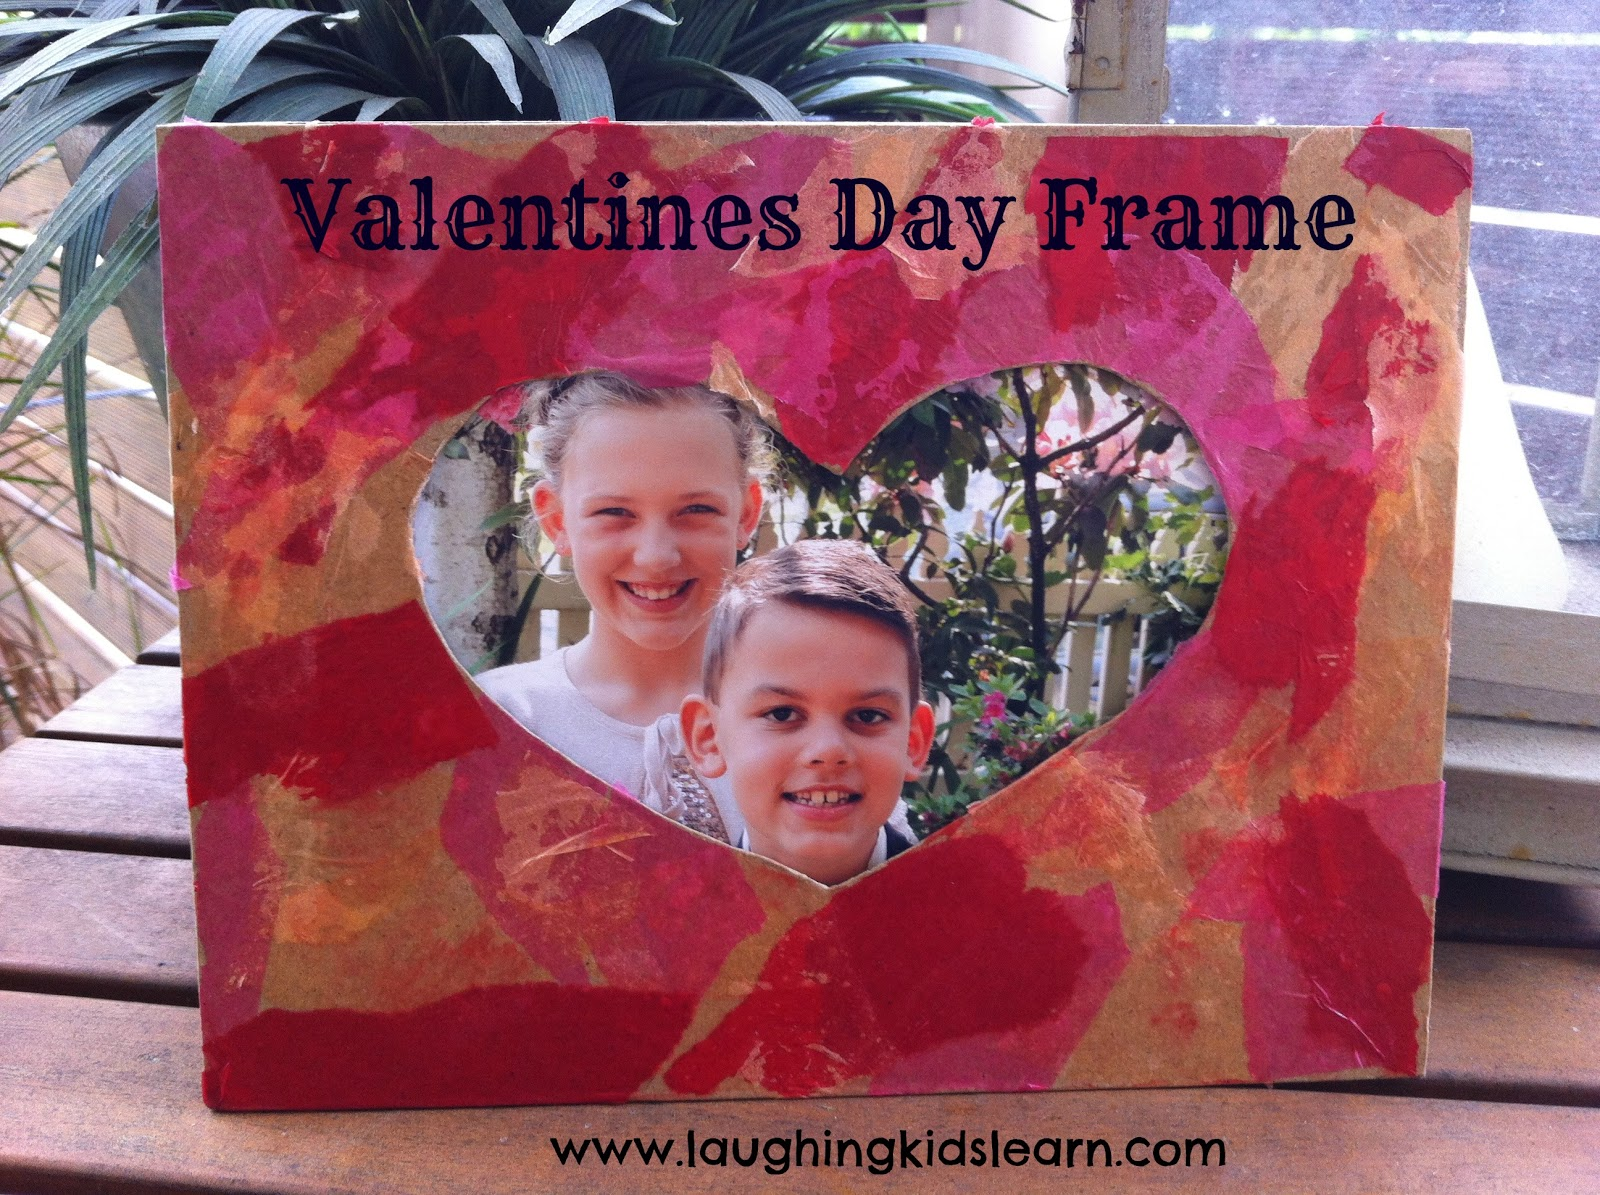 Valentines Day Frame Laughing Kids Learn